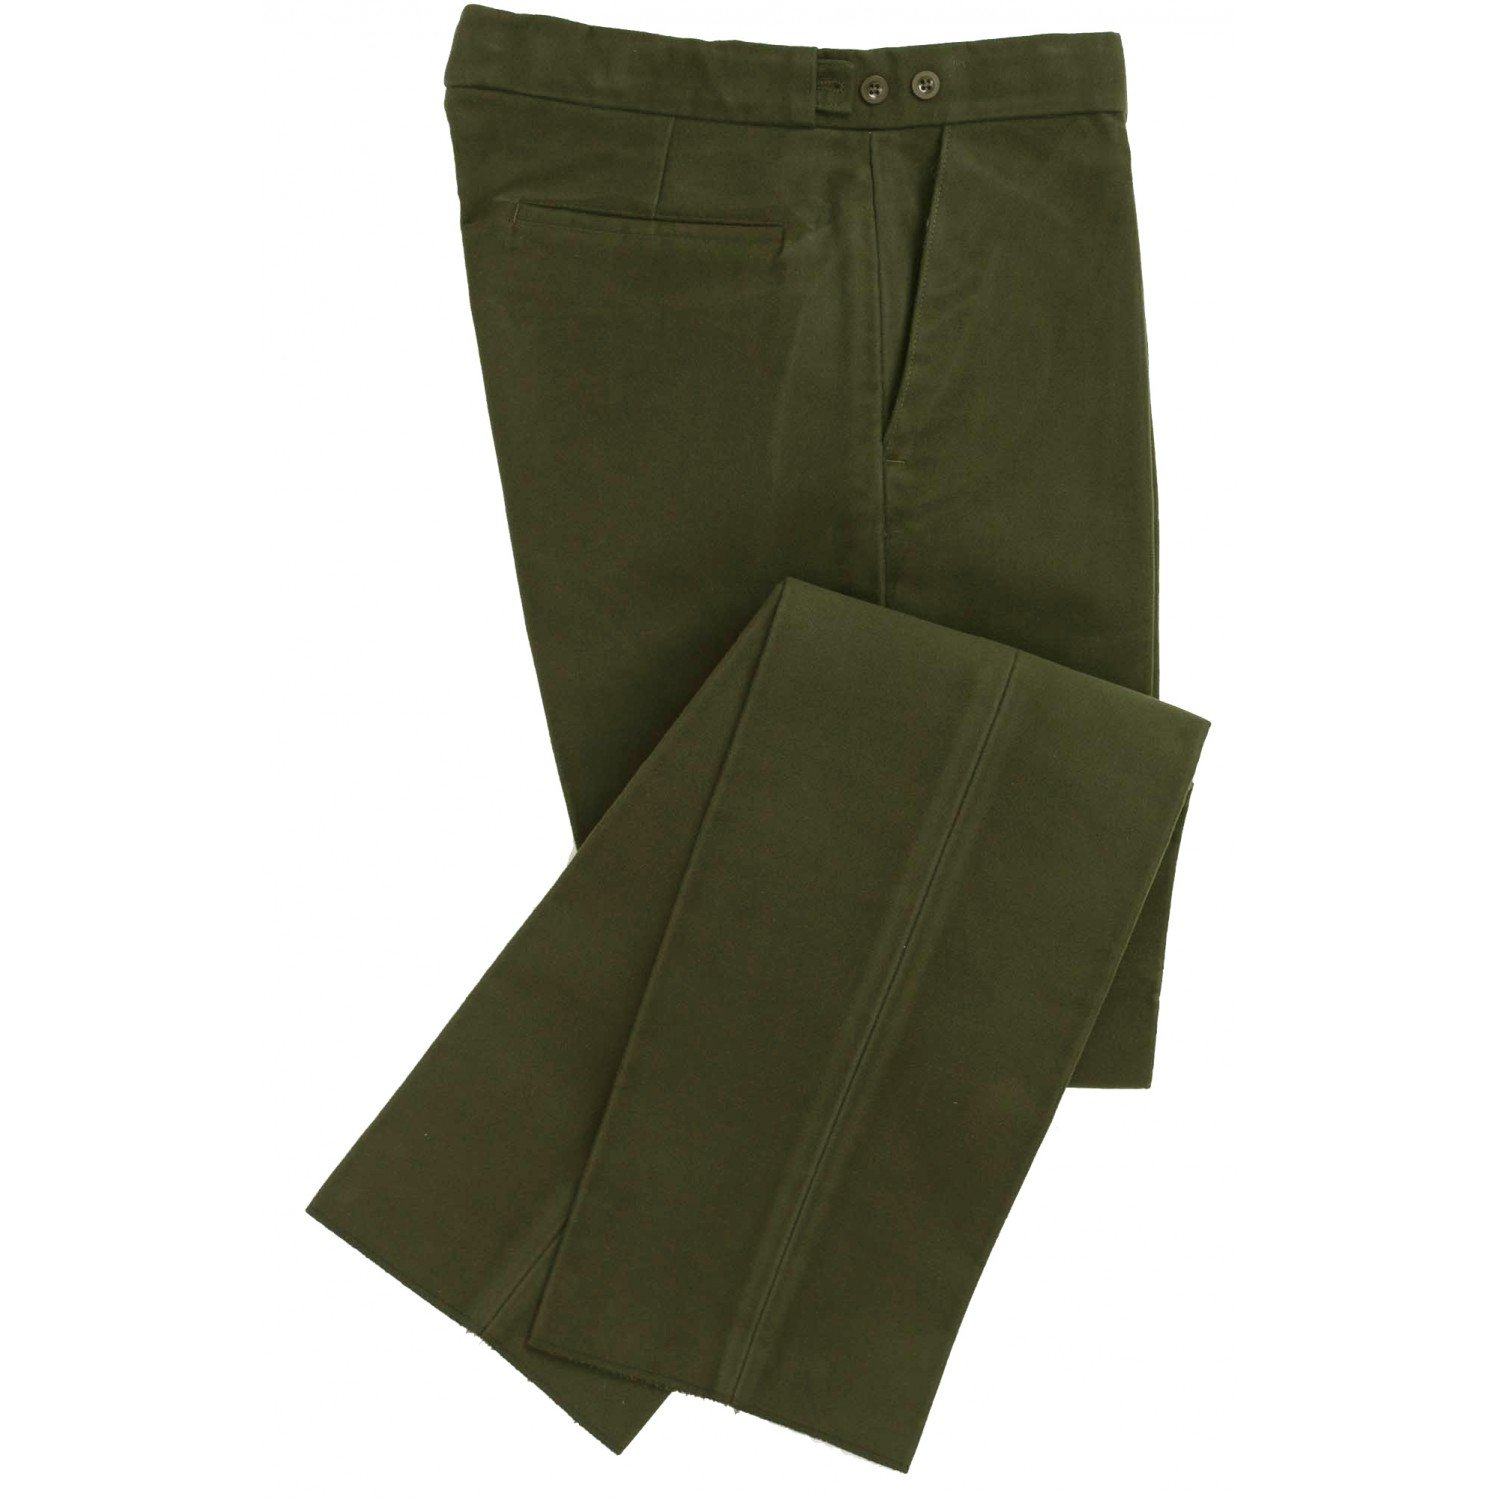 Traditional Shooting Clothing Moleskin Olive Trousers by Wathen Gardiner